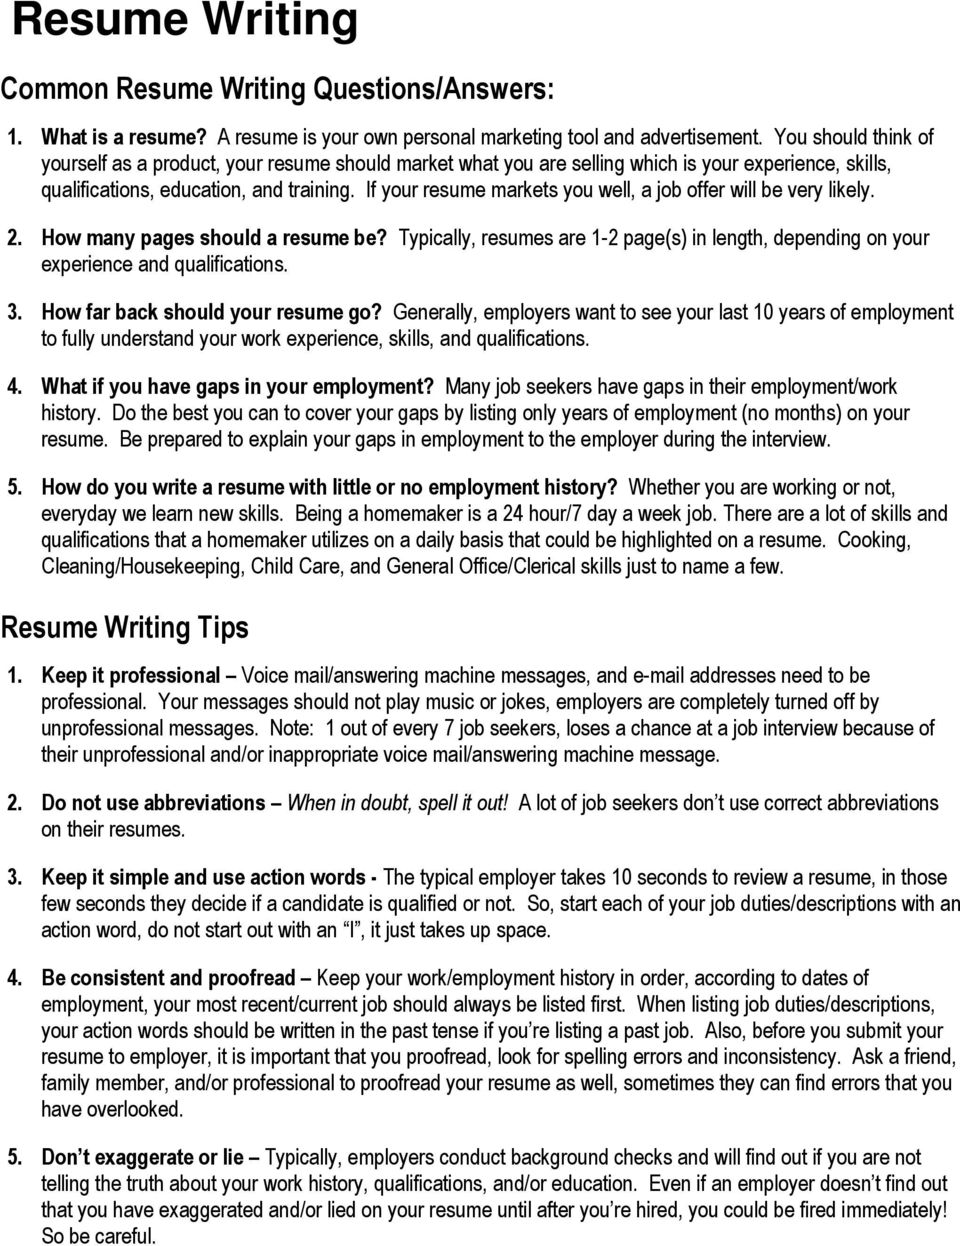 Resume Writing Common Questions Answers